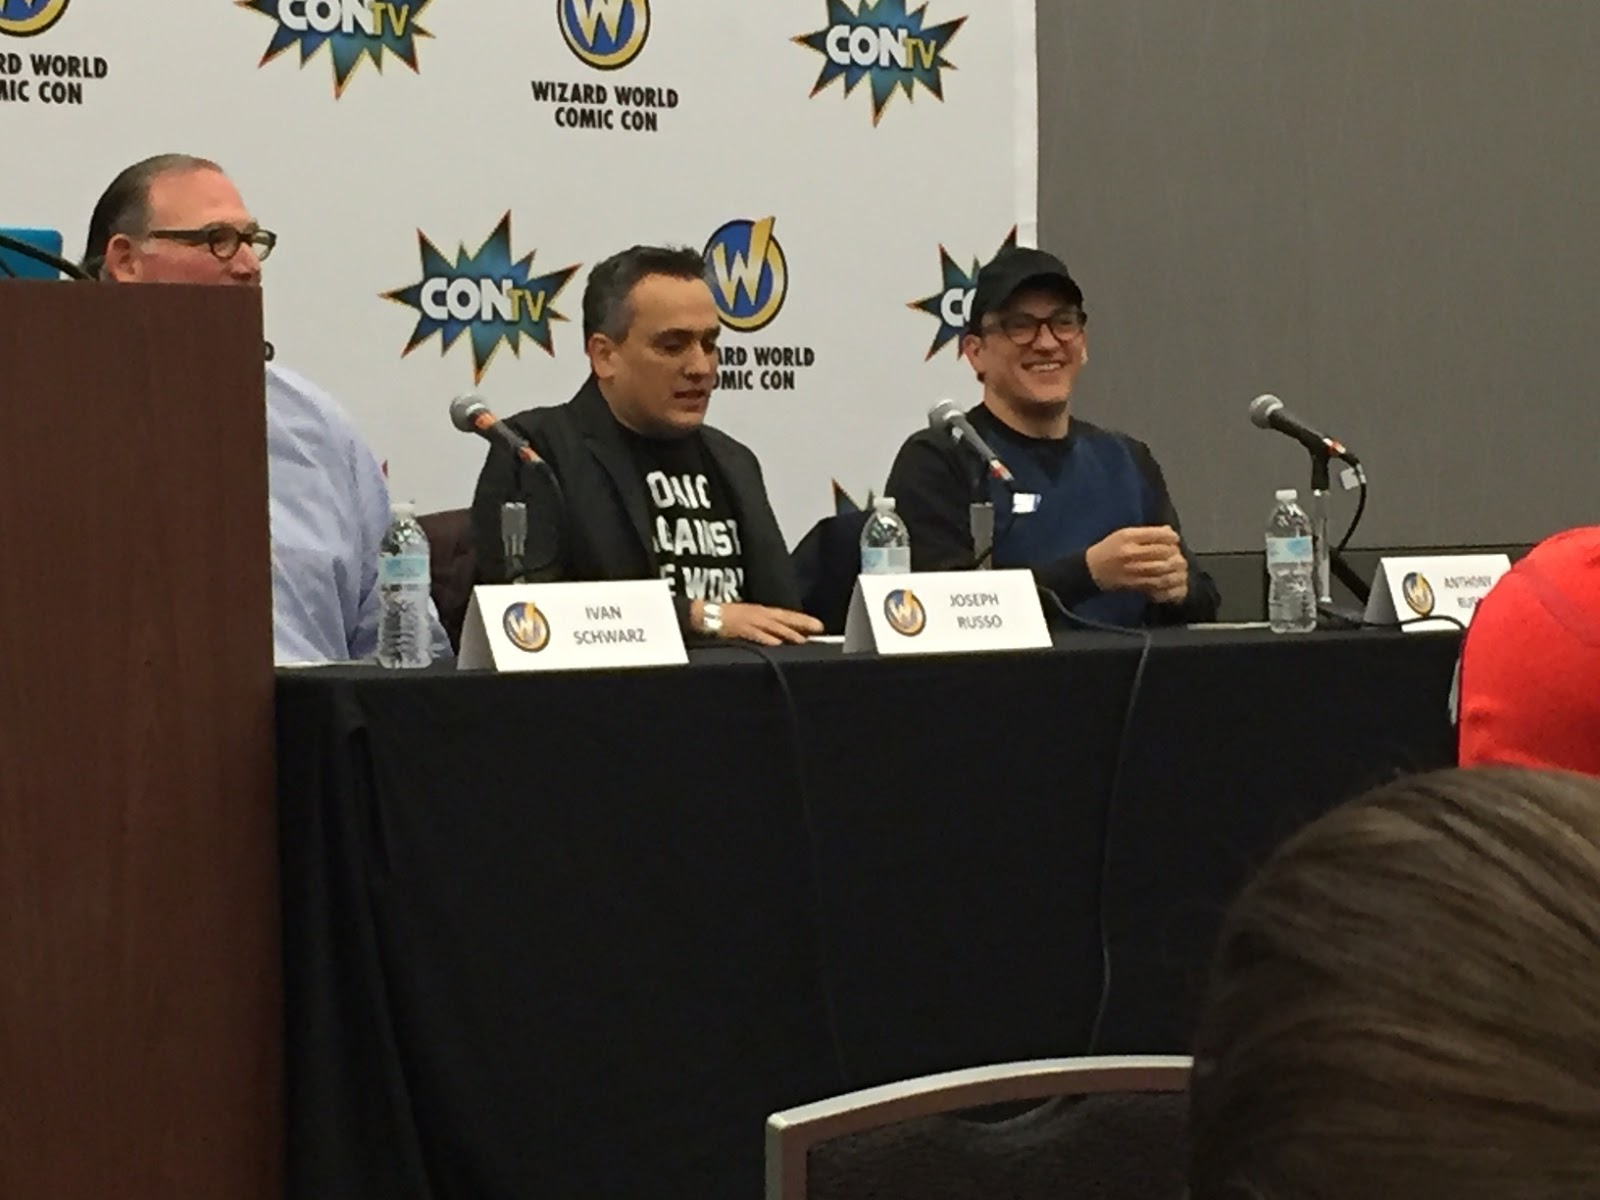 Cleveland's Joe and Anthony Russo, Captain America directors